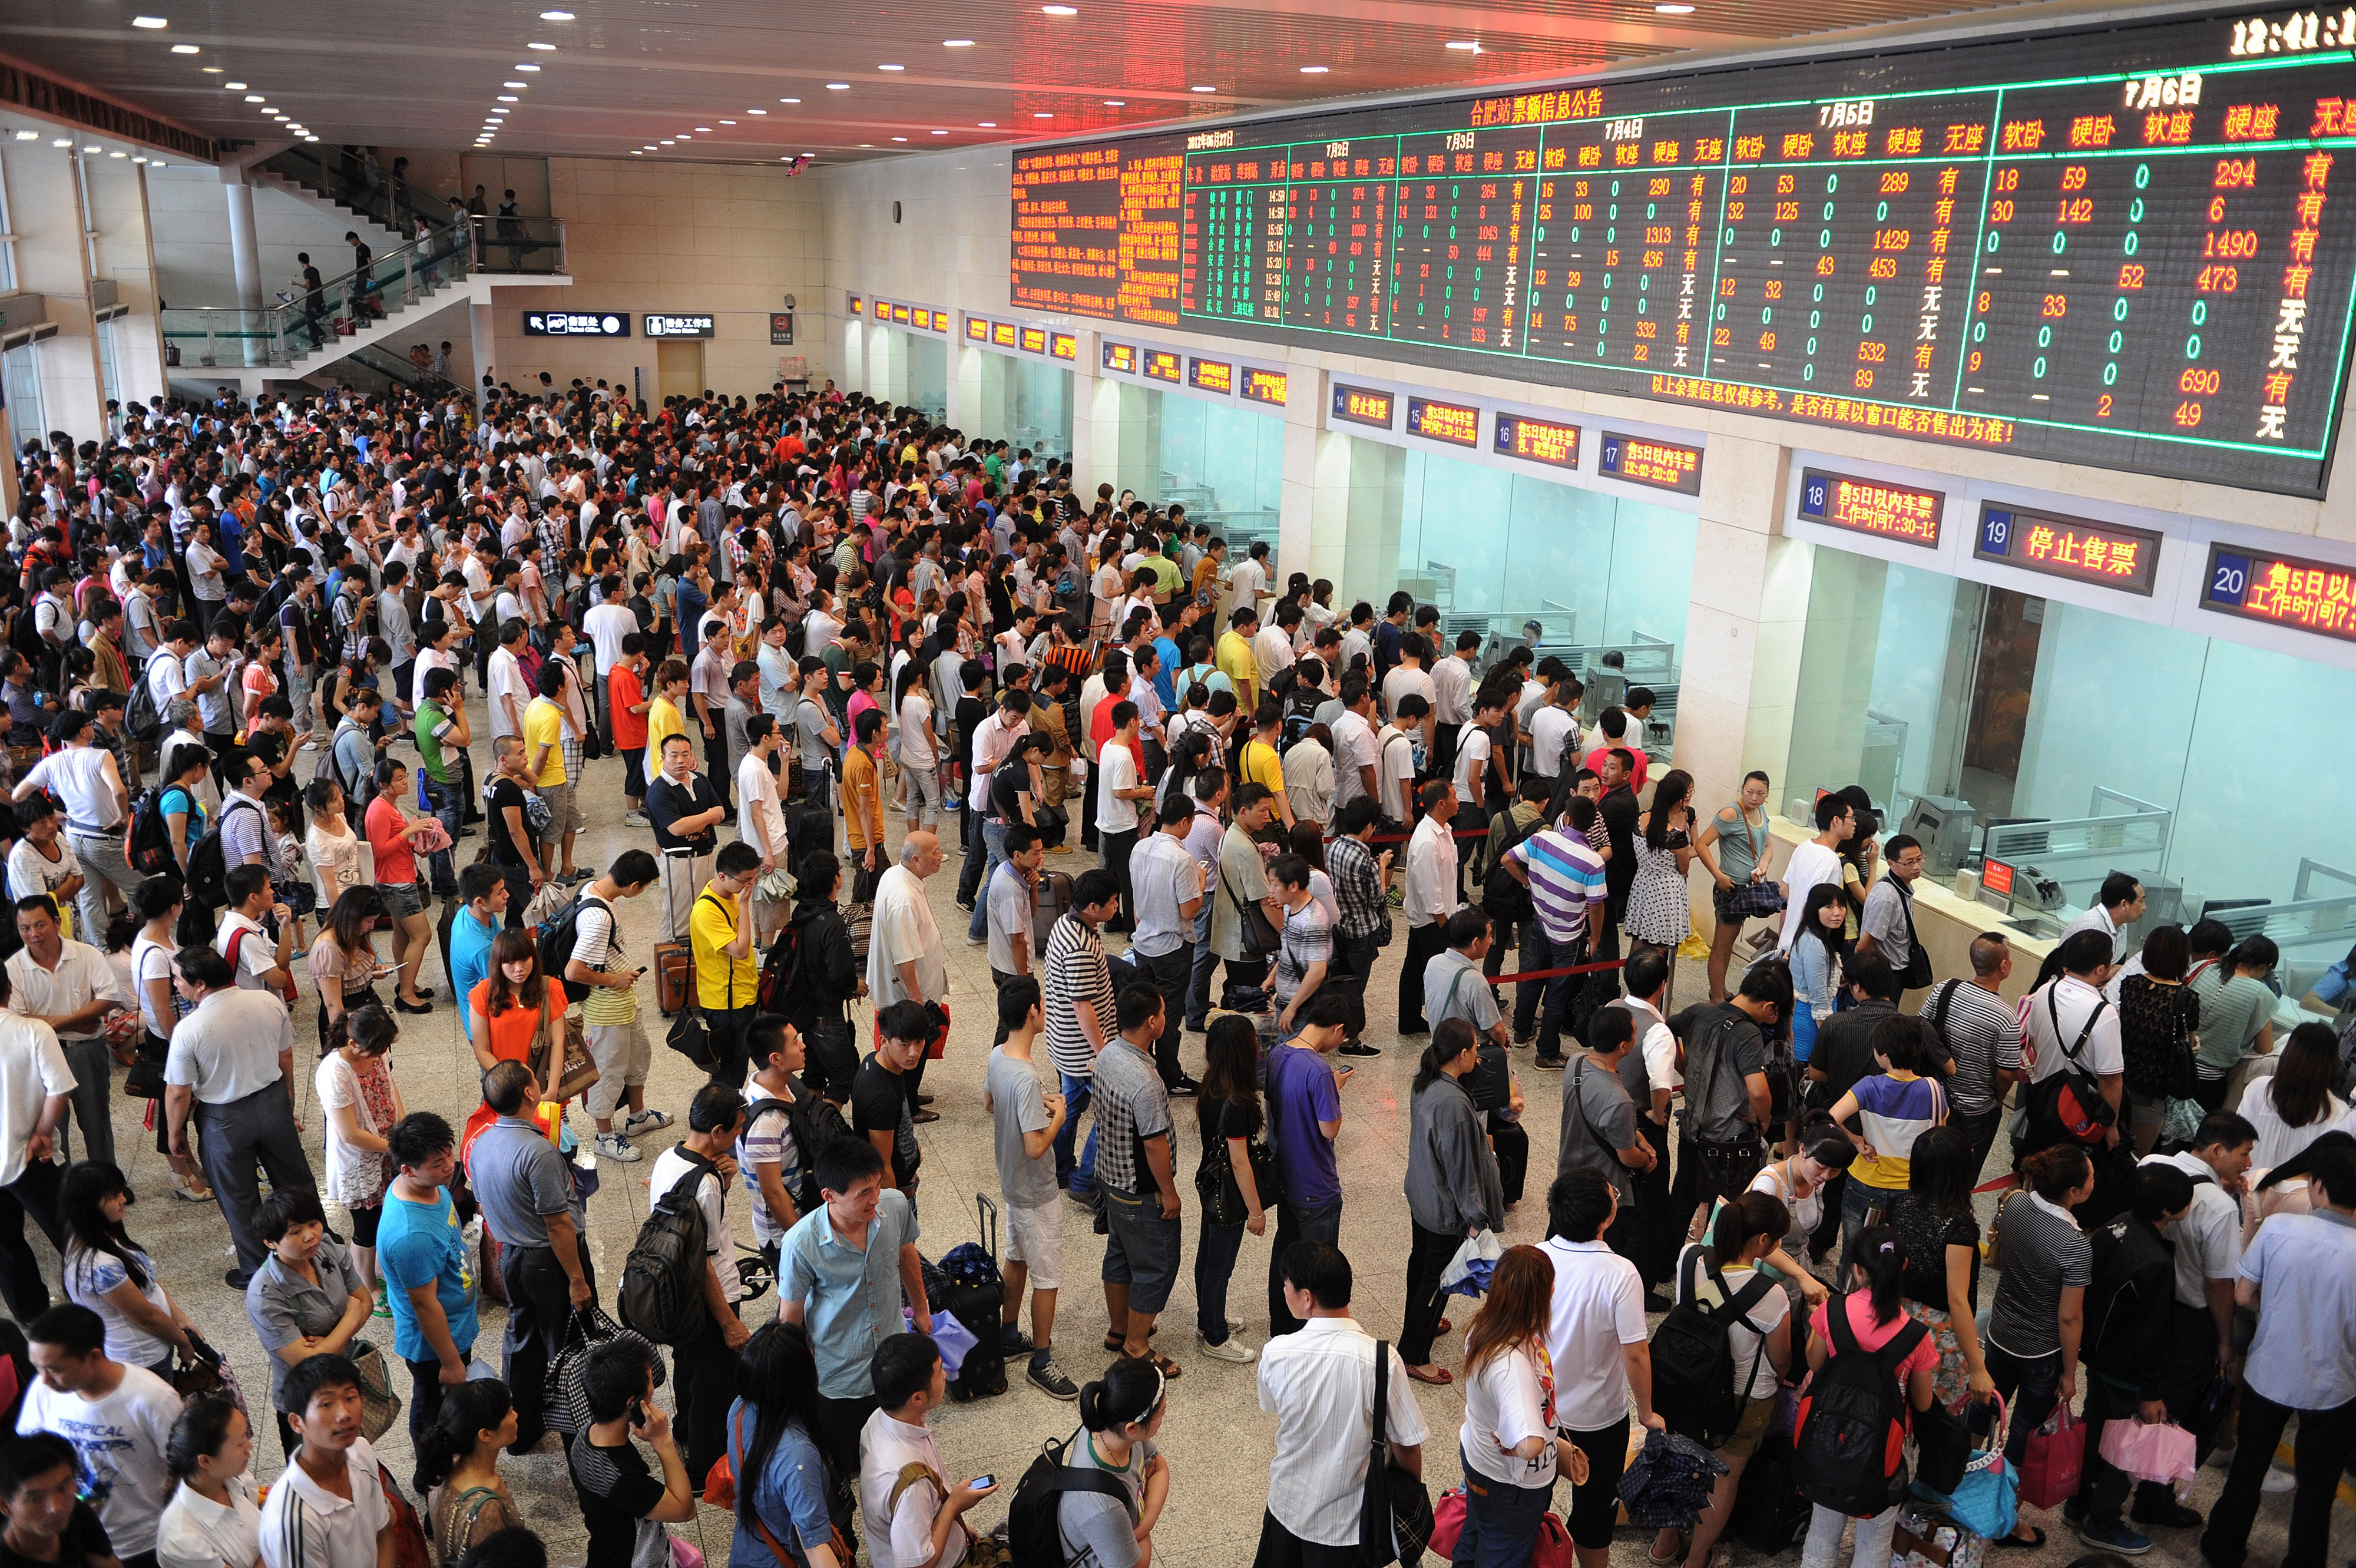 Chinese passengers line up to buy train tickets as the summer holiday starts in Hefei, in eastern China's Anhui province, in June 2012. China's railways transported some 453 million passengers during the first quarter of 2012.